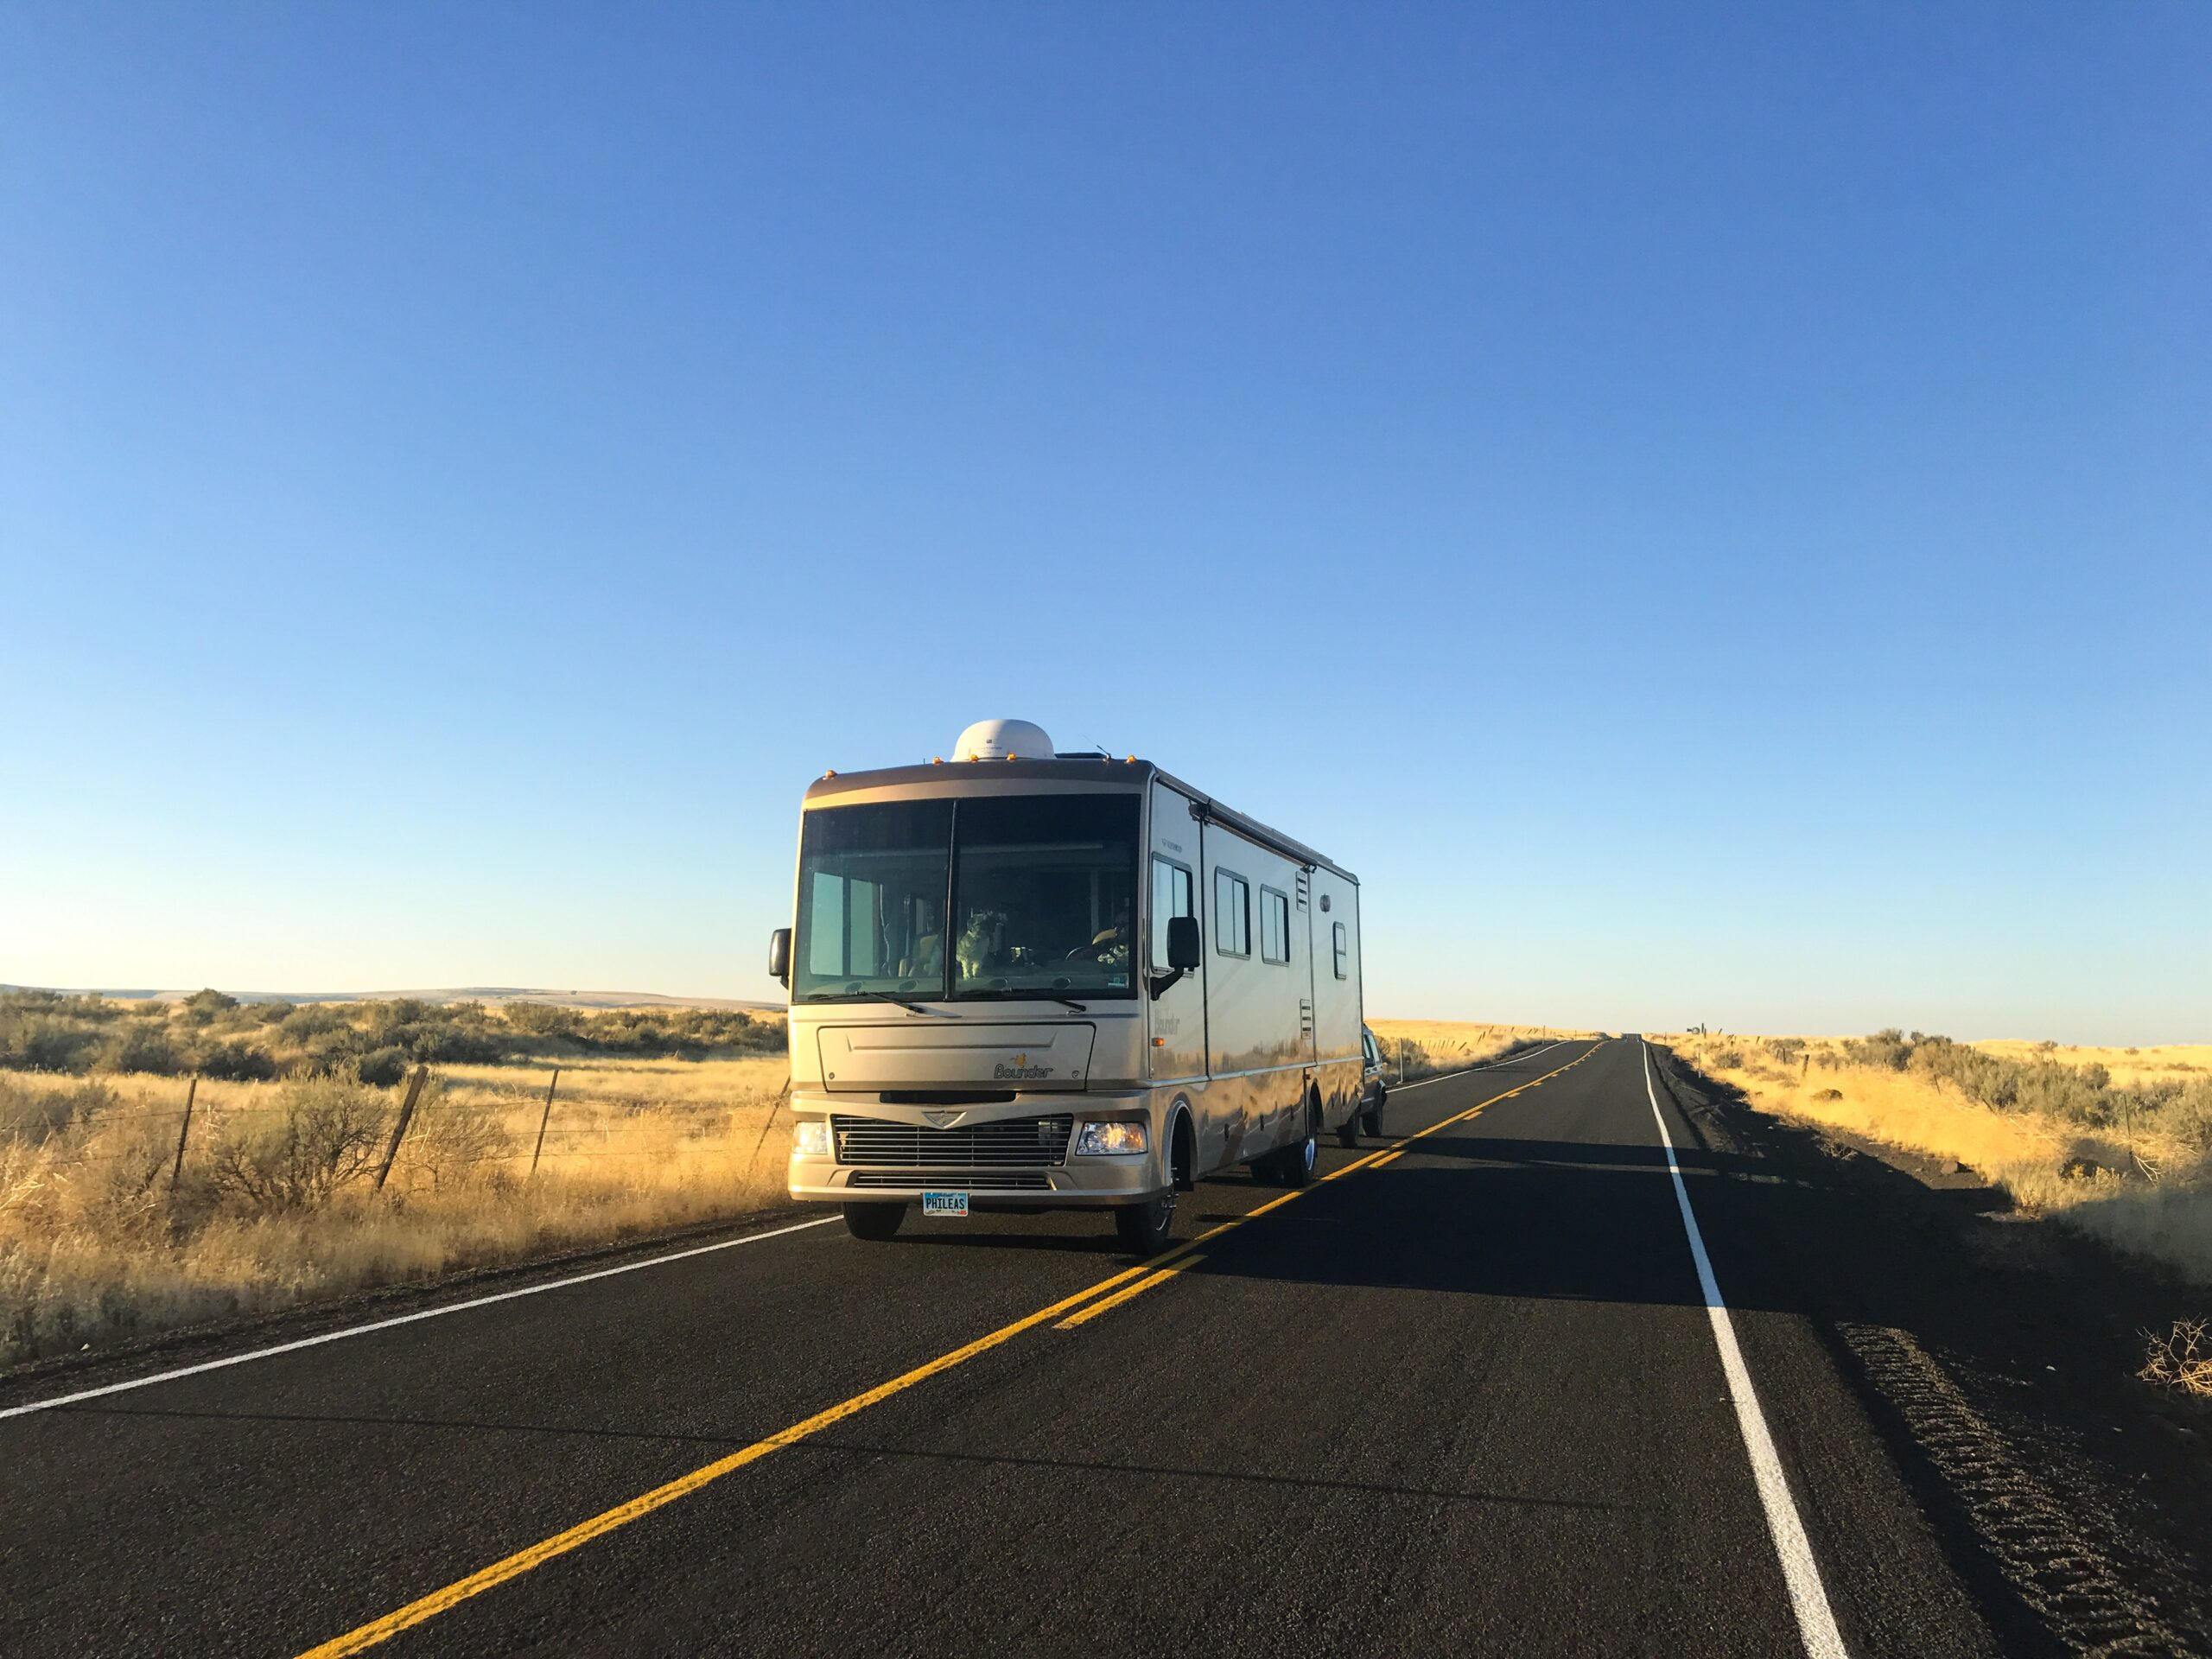 It's helpful to have a plan before your RV even ends up needing repairs.